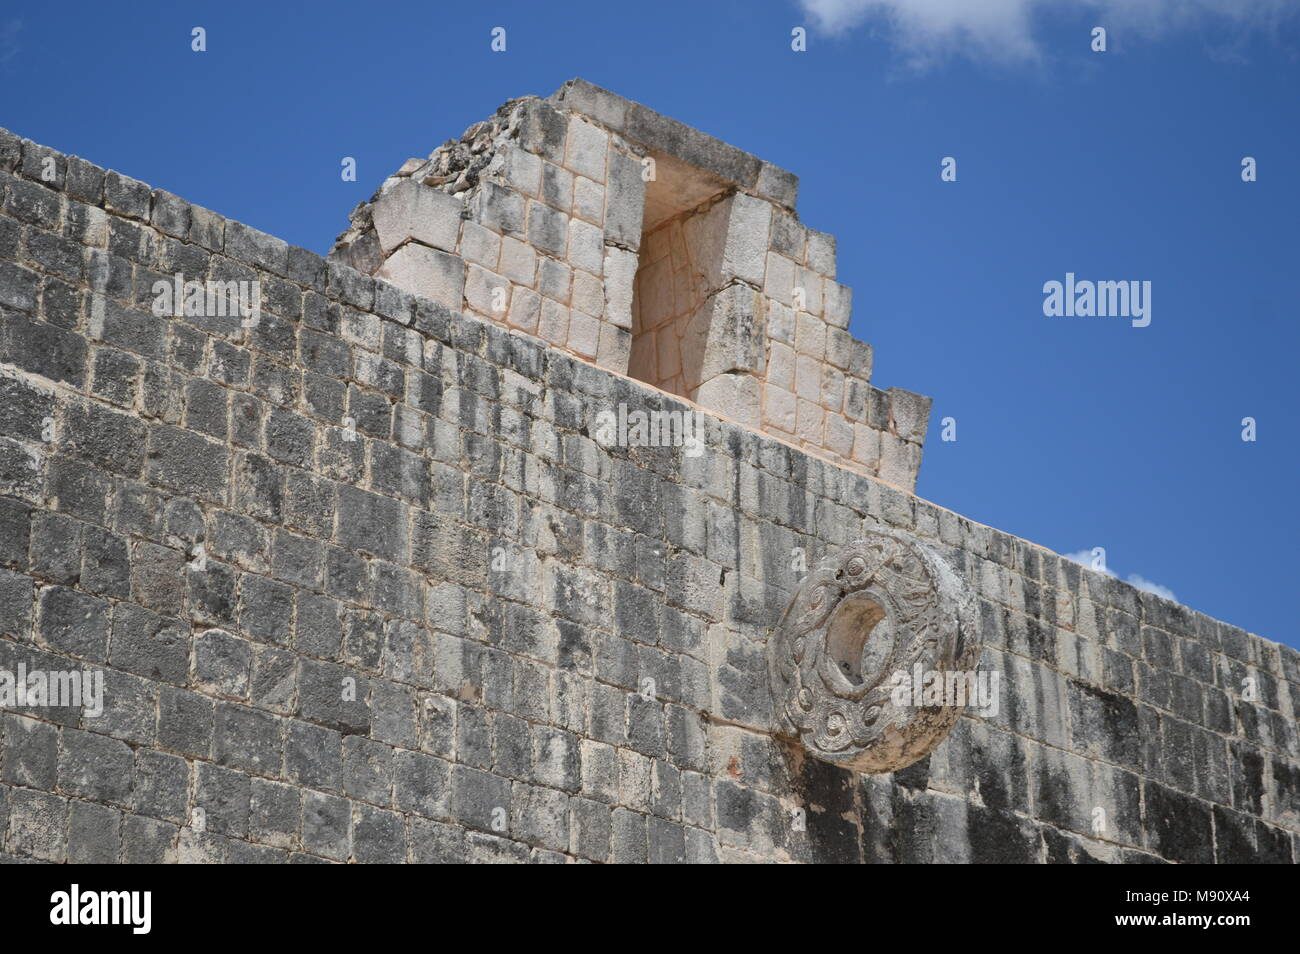 One of the rings at the great ball court in Chichen Itza, Mexico - Stock Image